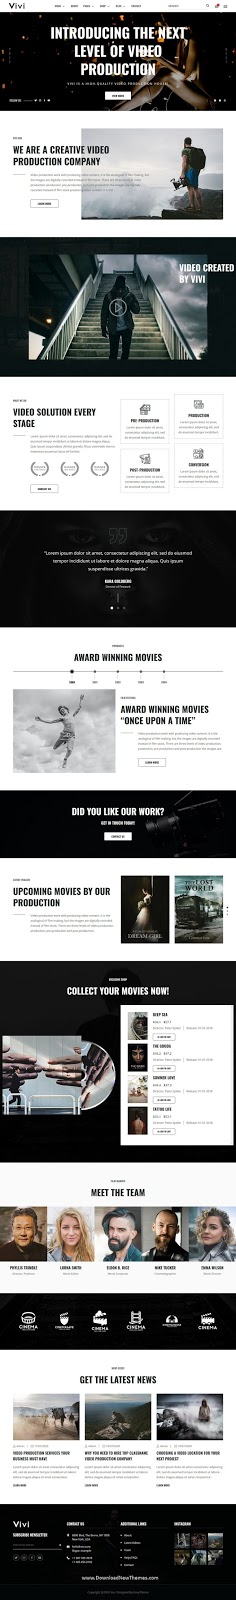 Best Video Production & Movie Website Template